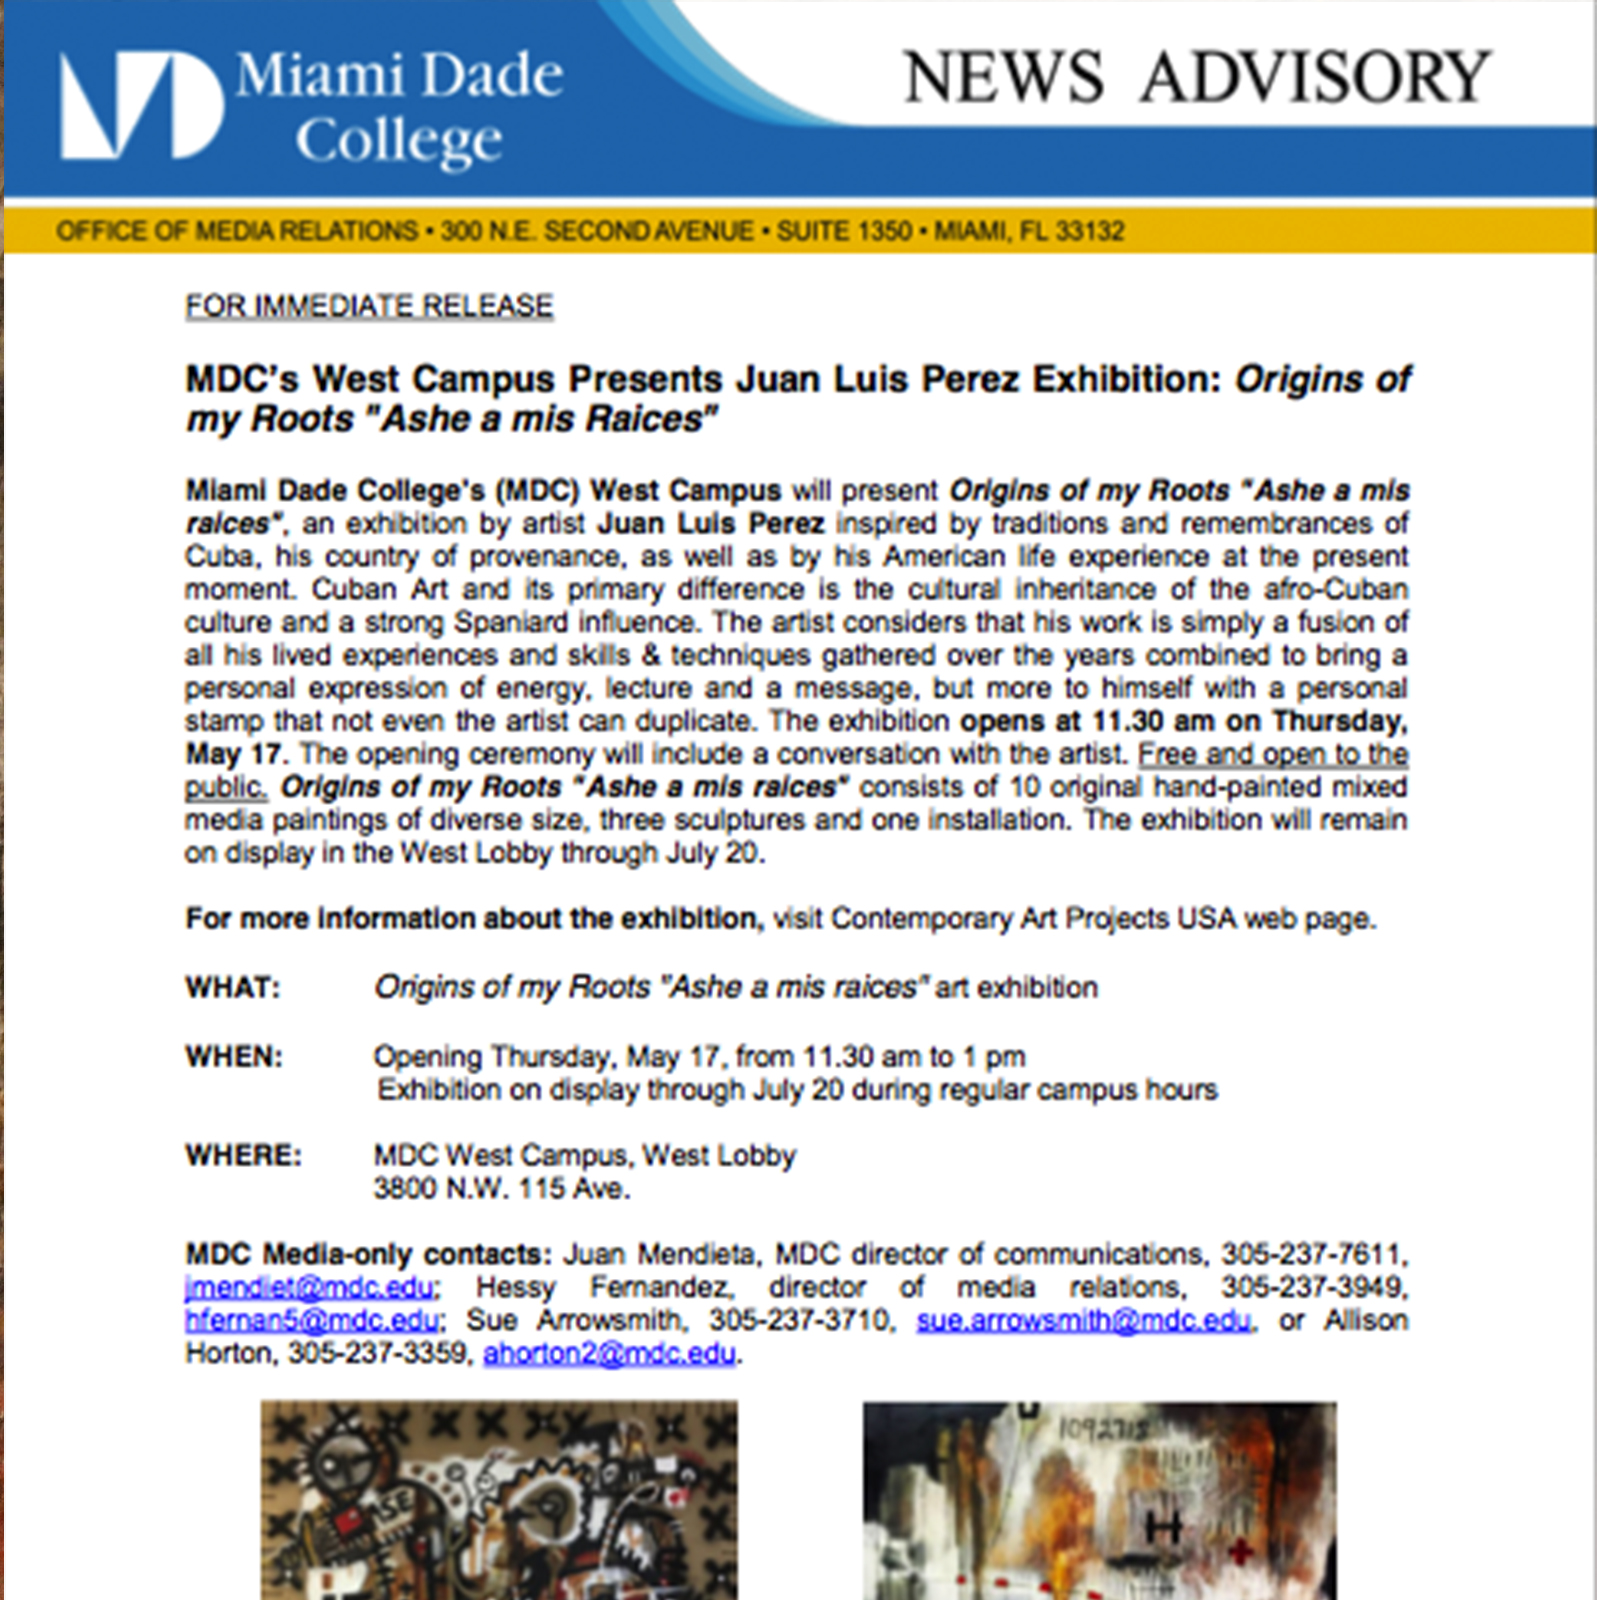 Miami Dade College presents Juan Luis Perez Exhibition